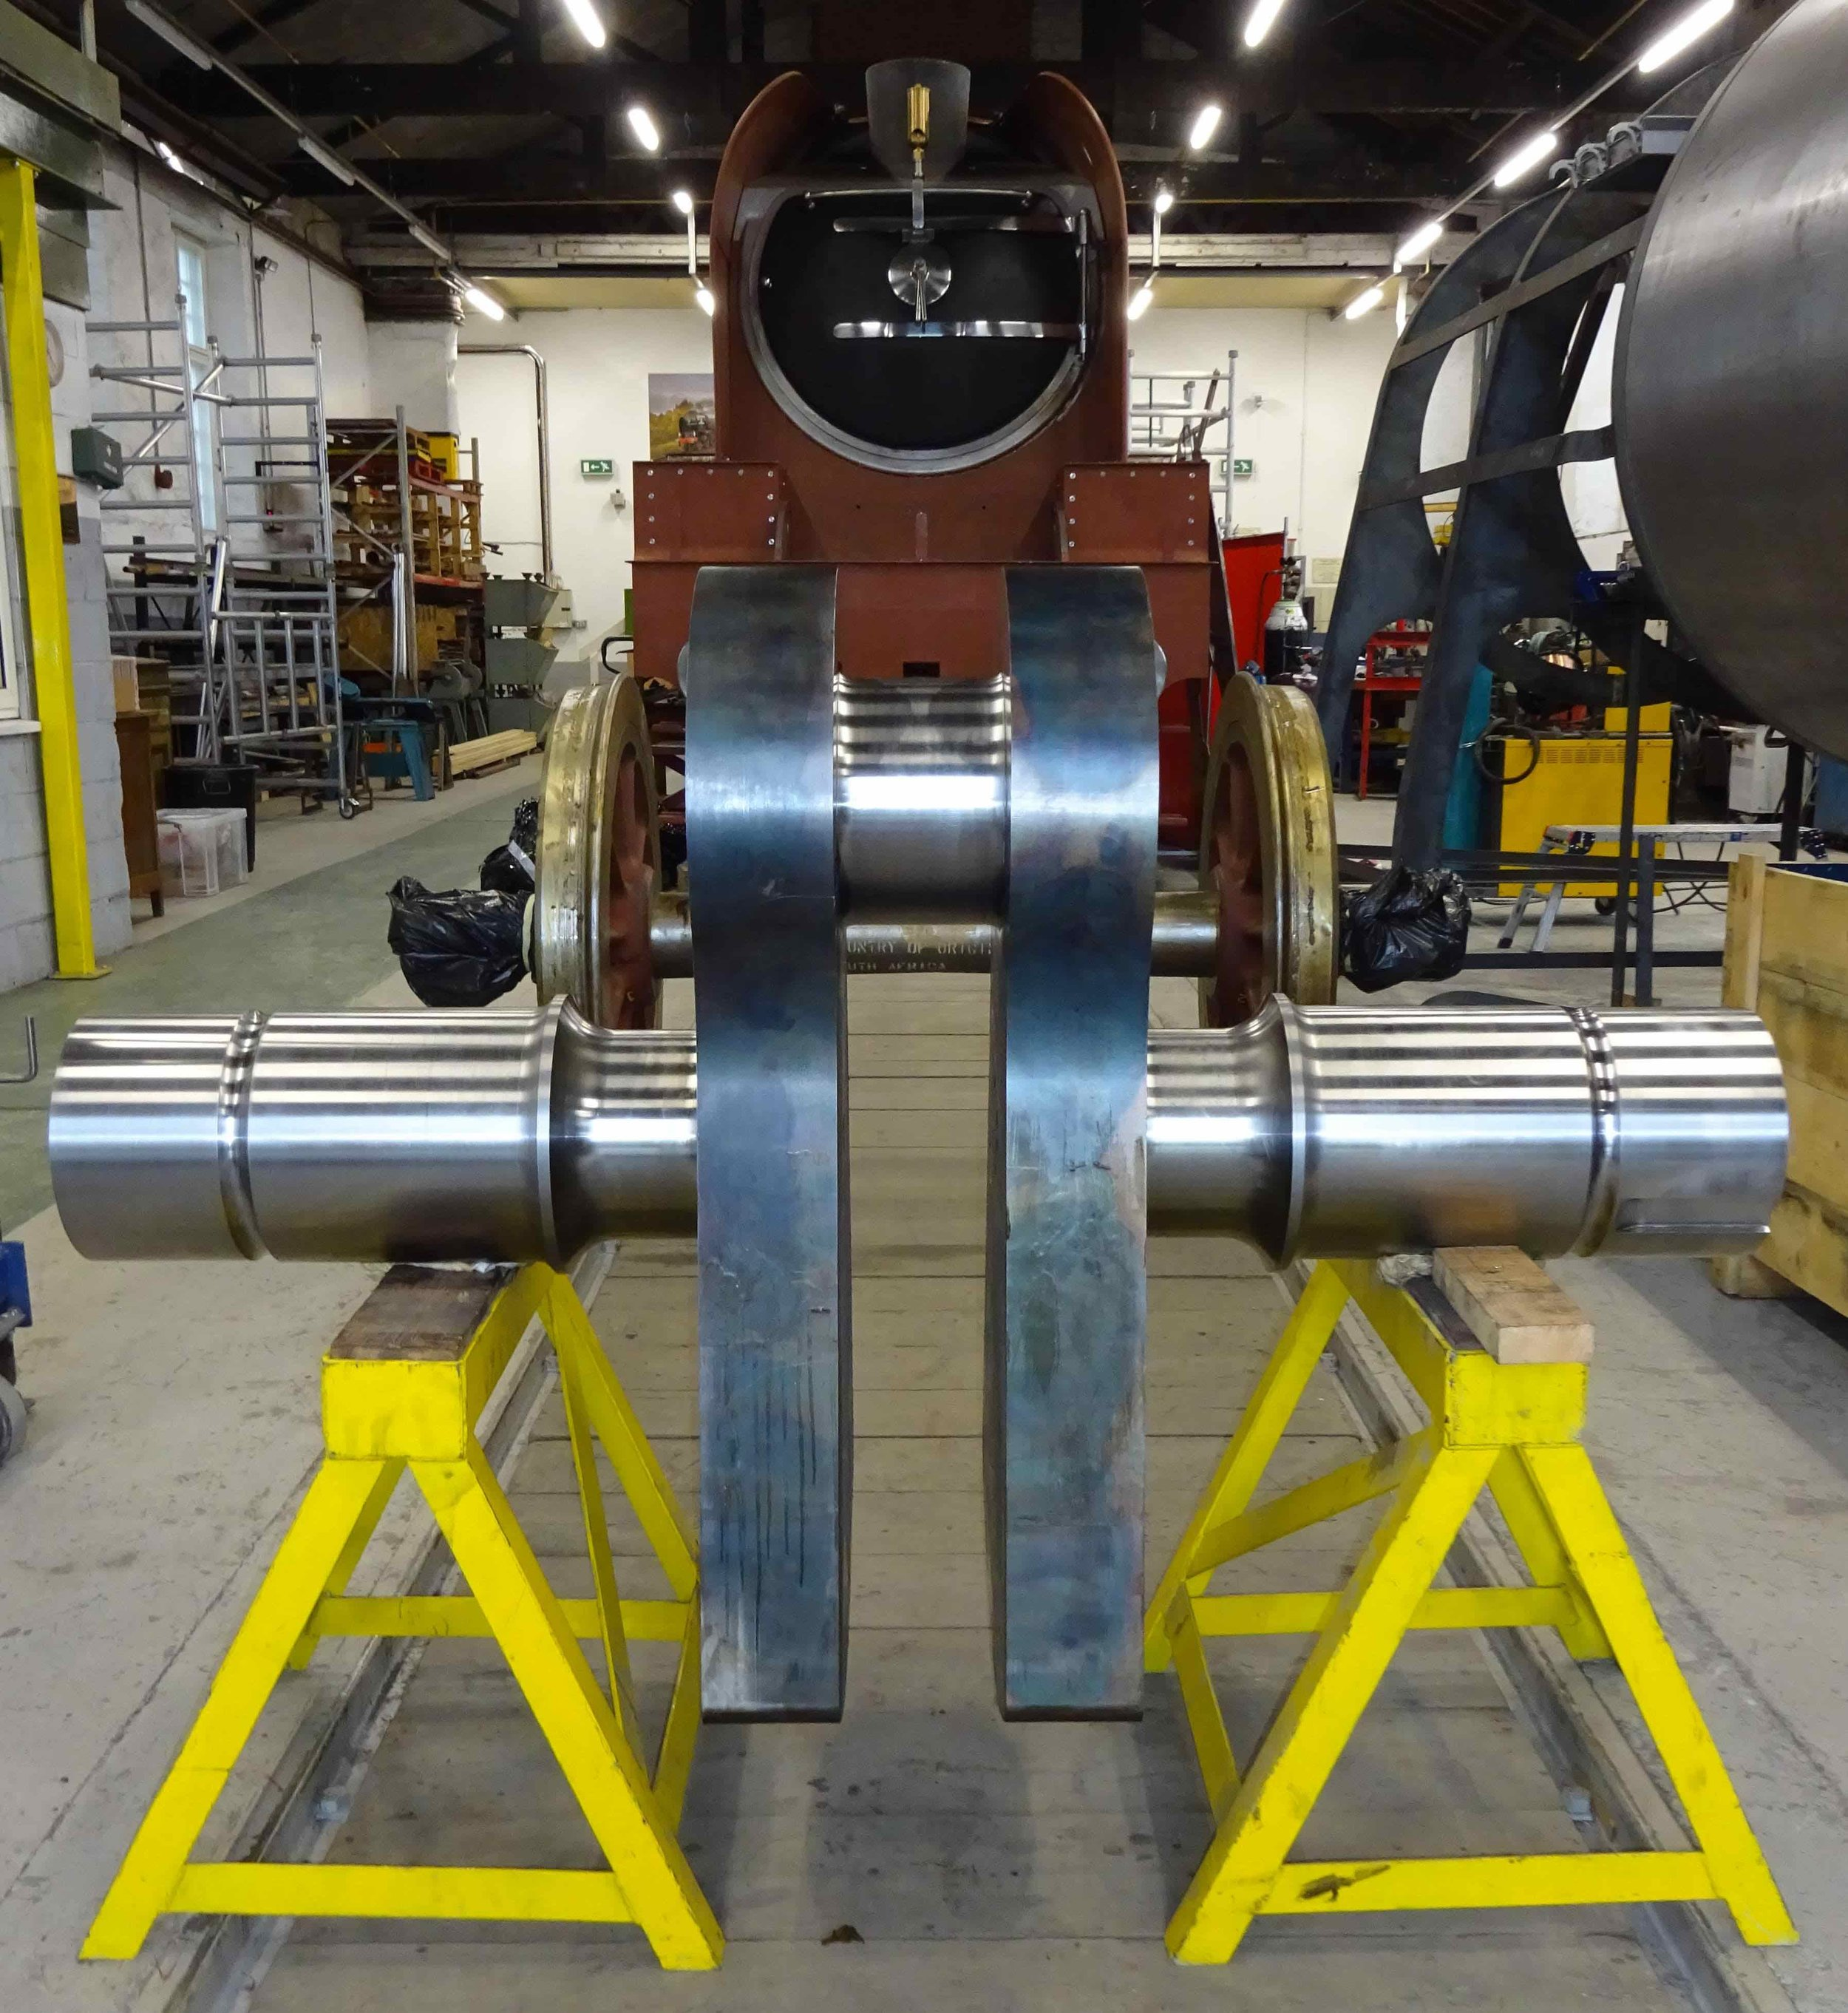 Prince of Wales ' newly delivered crank axle, which should be united with its wheels and tyres in March next year. MANDY GRANT